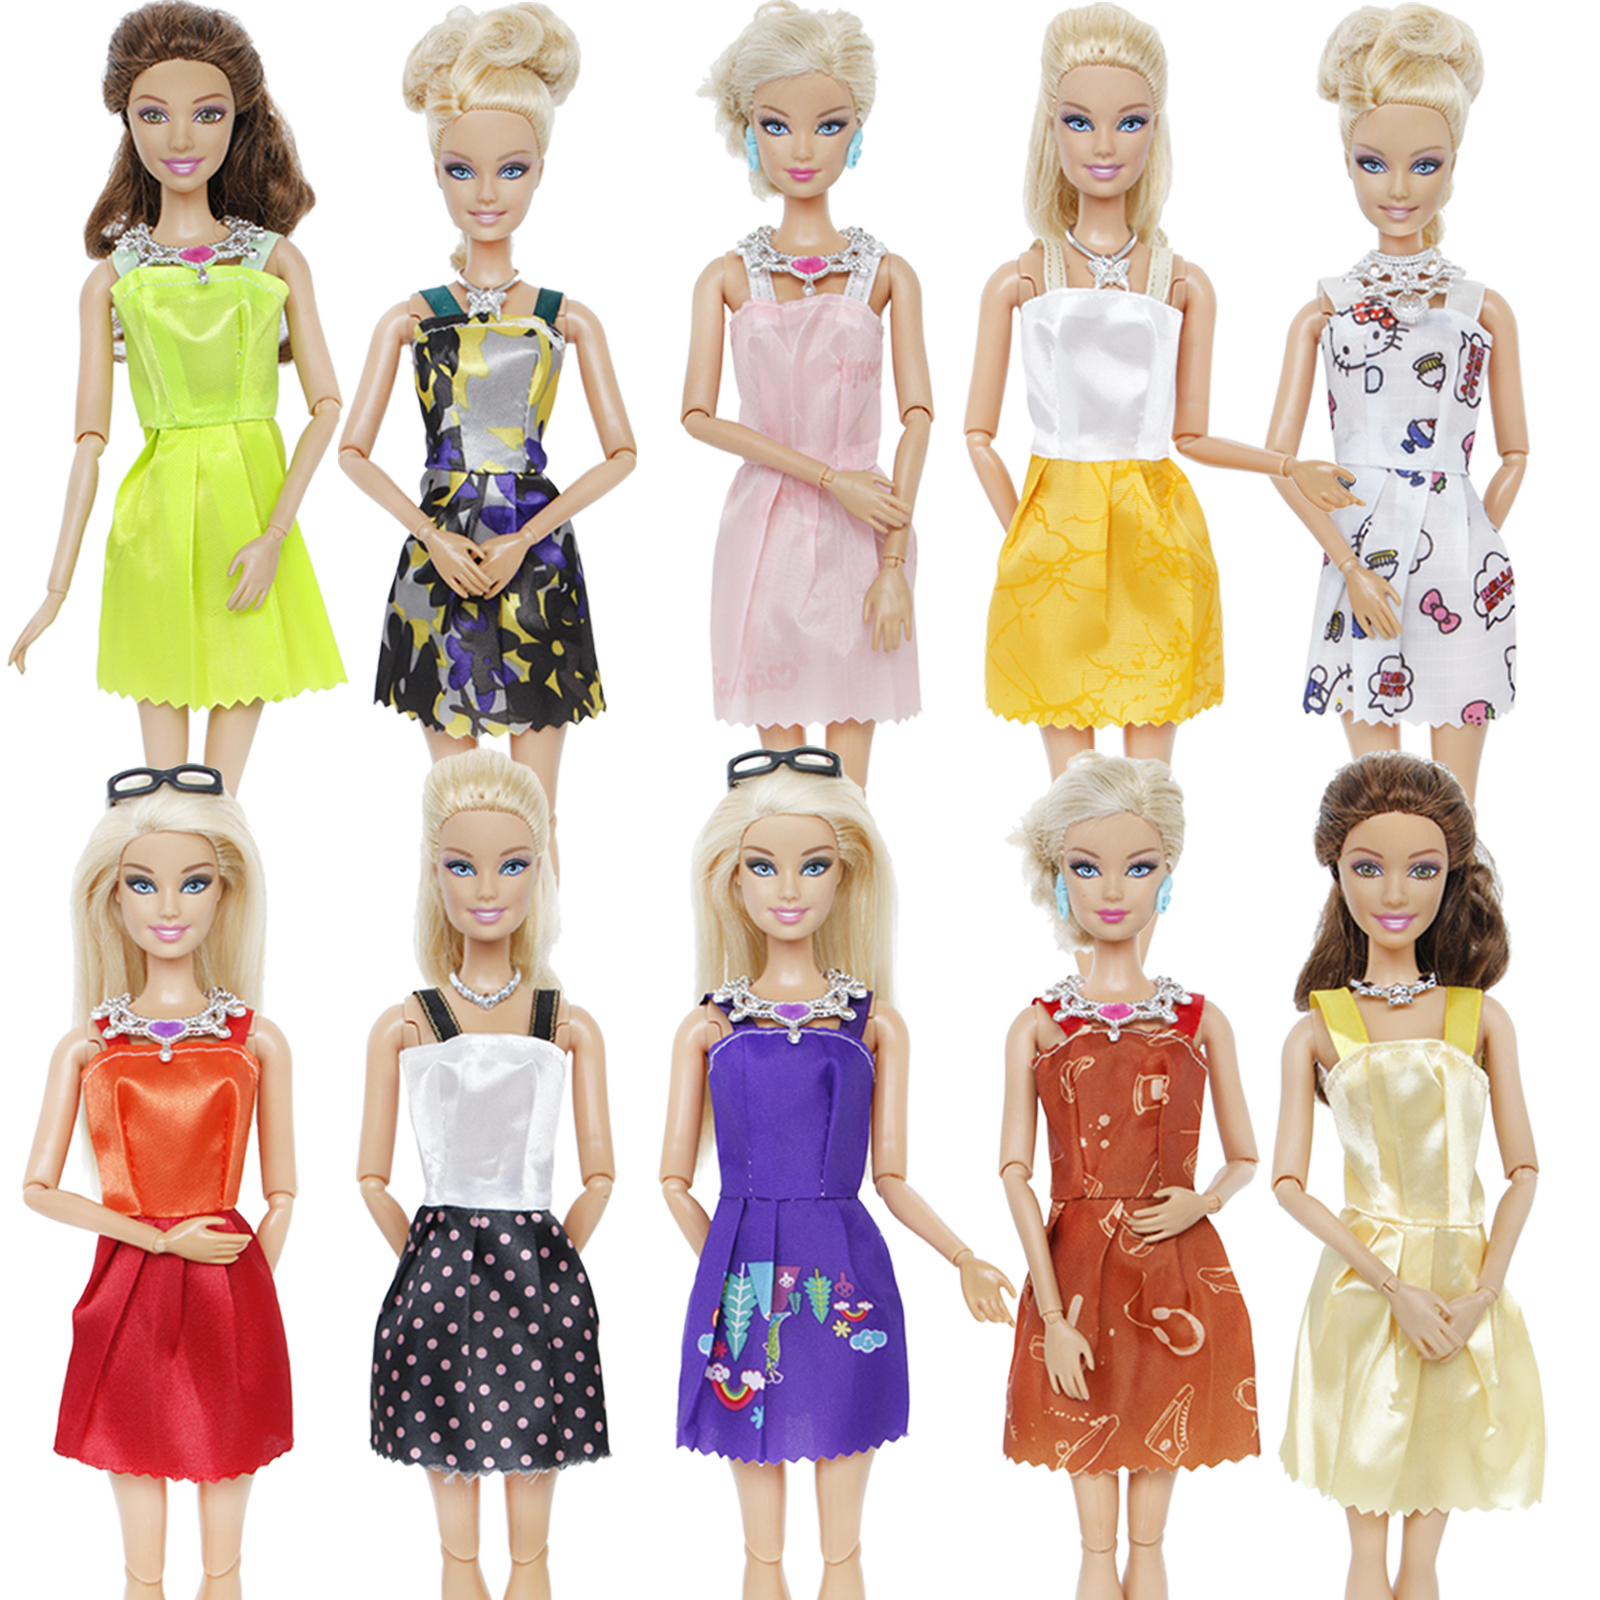 20 Pcs Lot   Random 10x Mixed Style Mini Dress + 6x Plastic Necklaces + 4x  Black Glasses Clothes For Barbie Doll Accessories -in Dolls Accessories from  Toys ... b382a949e27b